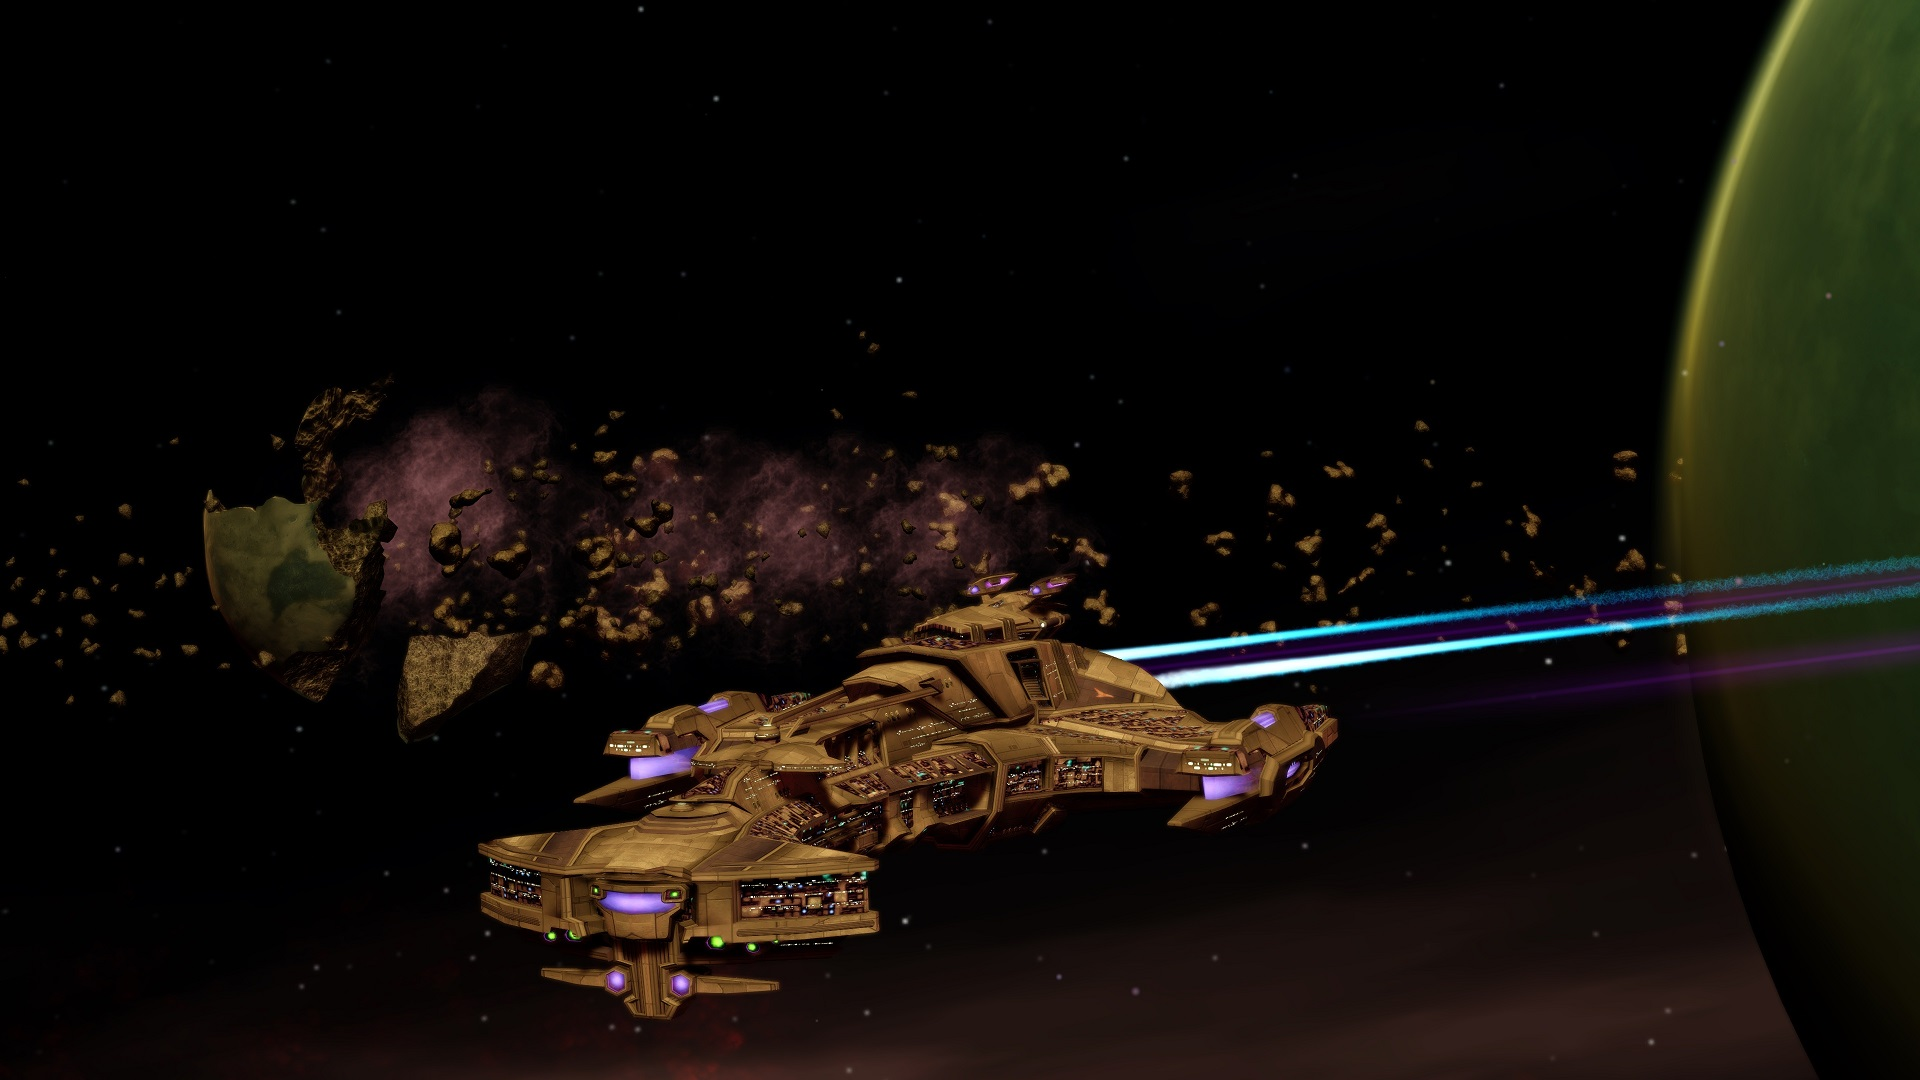 I.K.S. Laughing Dragon at Konos by jdciollins 12th Legacy Fleet 2